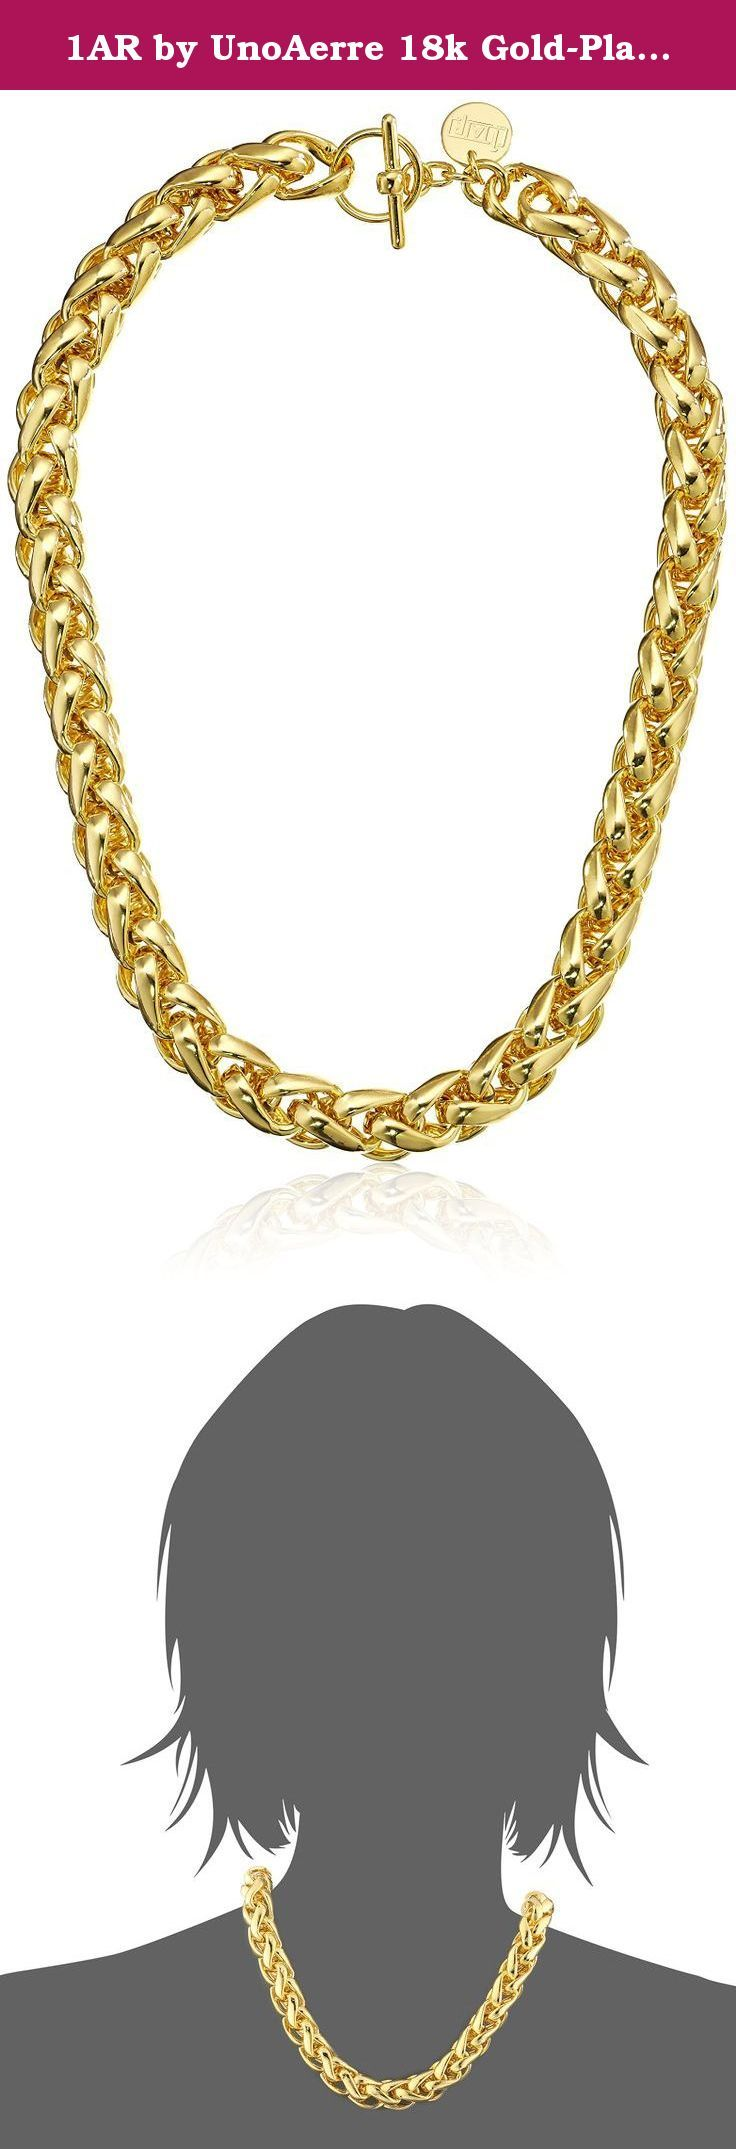 """1AR by UnoAerre 18k Gold-Plated Herringbone Link Necklace, 20"""". Manufactured by Italy's renown gold craftsmen, this 1AR by UnoAerre necklace features a thick herringbone link chain constructed from rich 18k gold plating. Toggle clasp. Special technology protects necklace from color fading. Clean with soft, dry, chemical-free cloth only. Made in Italy."""